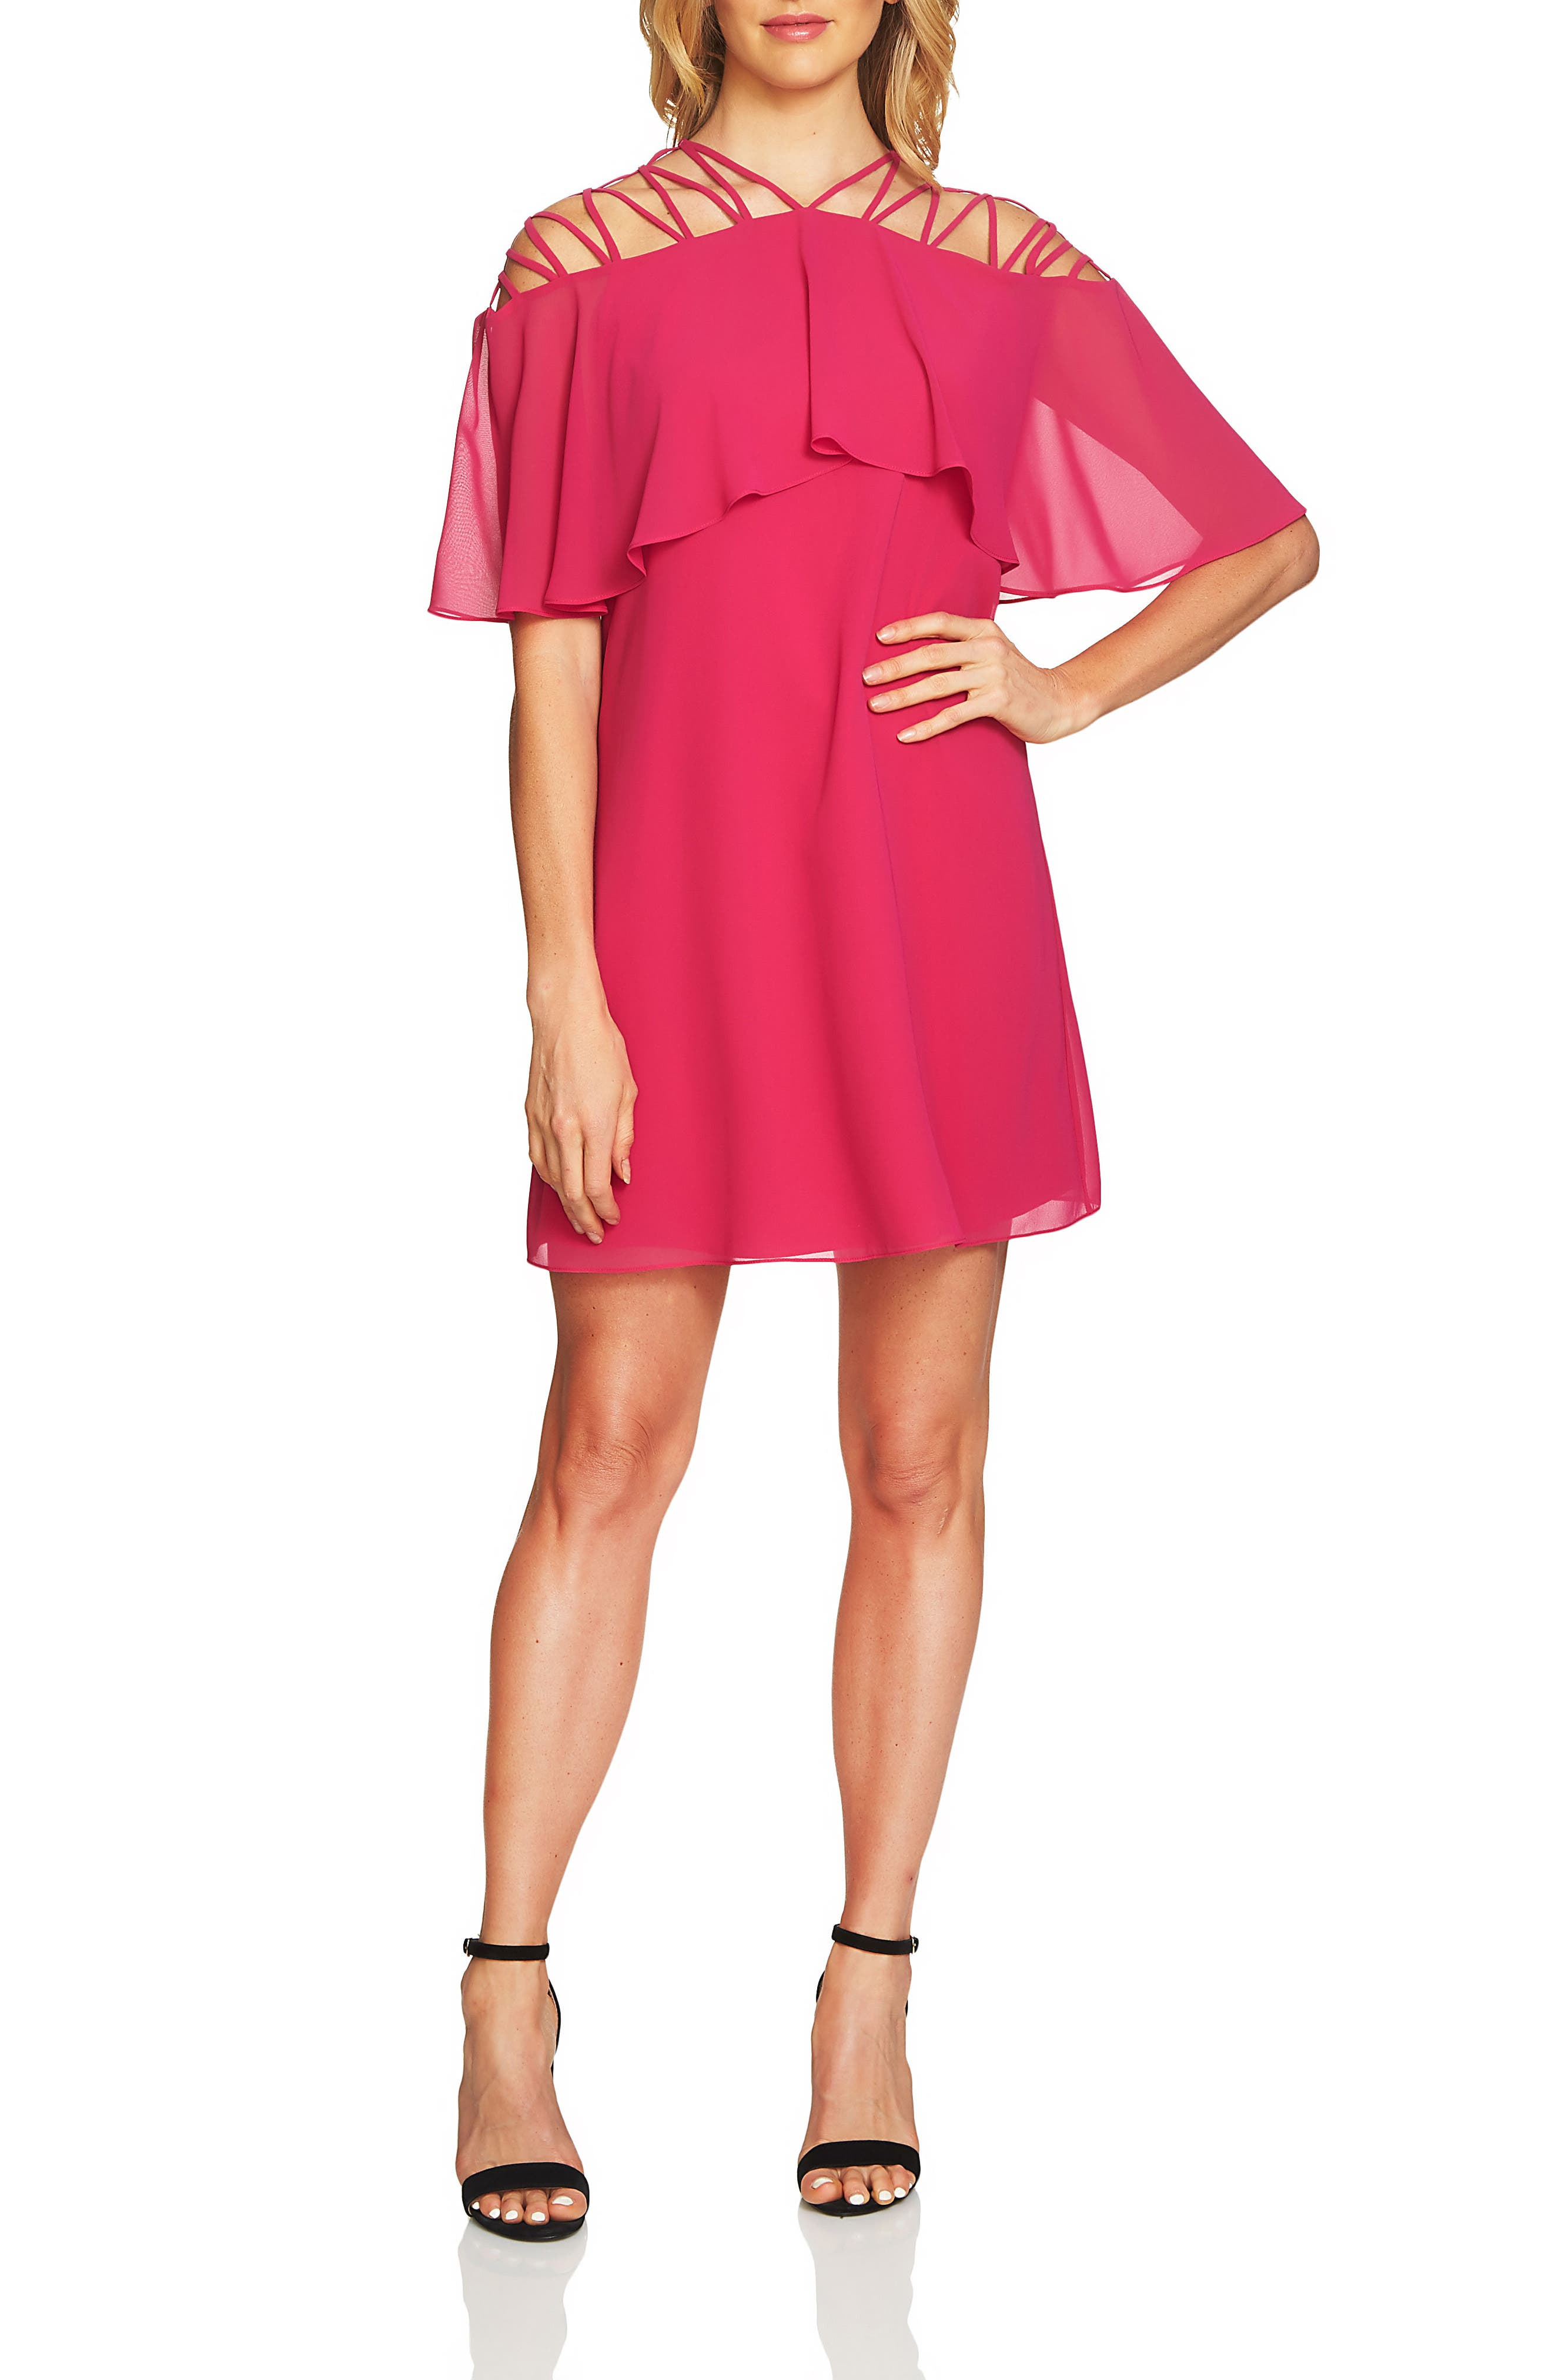 Cece Taylor Lattice Chiffon Shift Dress